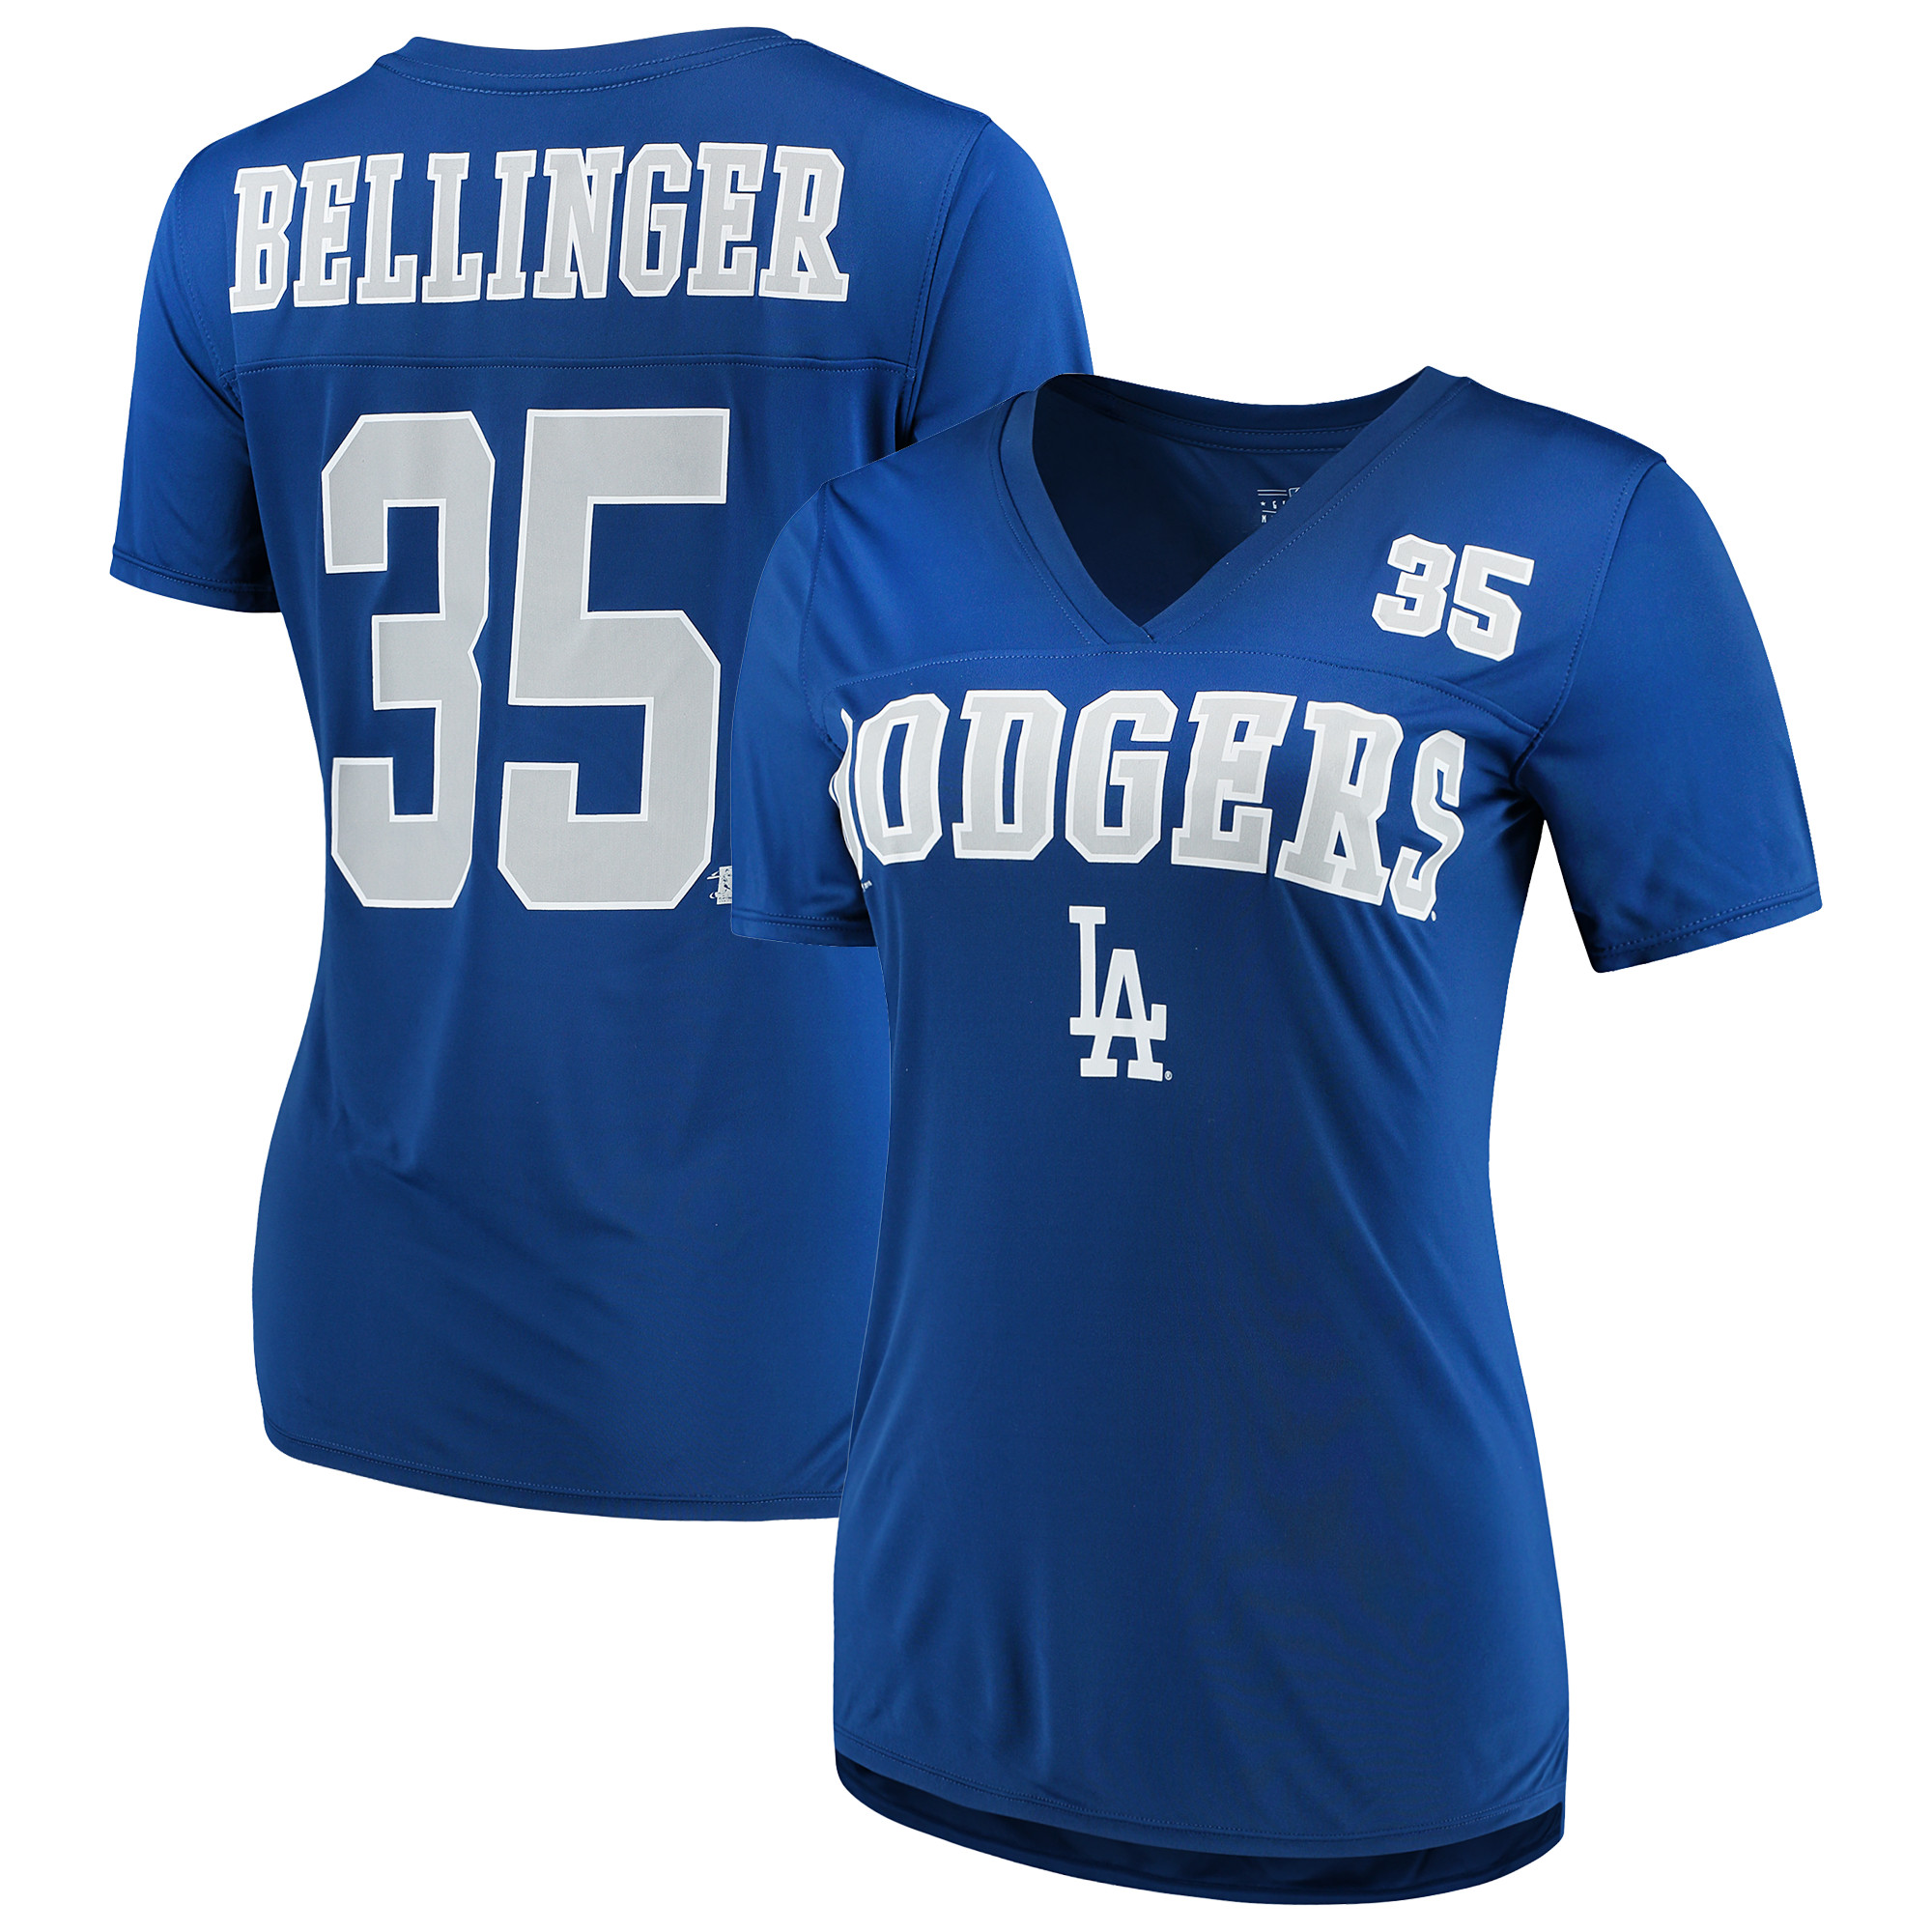 Women's New Era Cody Bellinger Royal Los Angeles Dodgers Name & Number T-Shirt